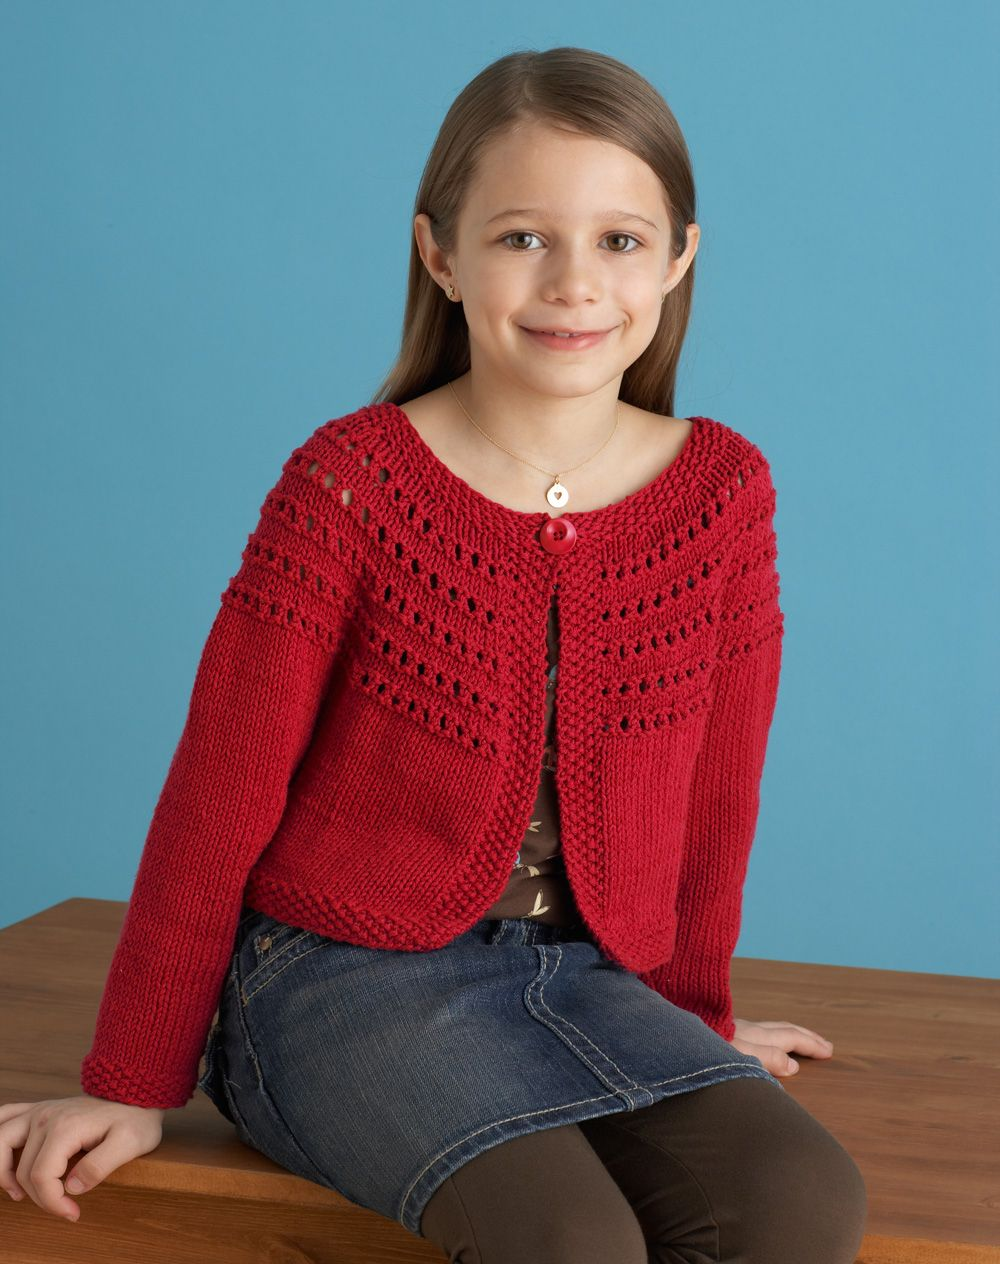 Knitting Kids Sweater : Sweaters hoodies and dresses for kids tweens